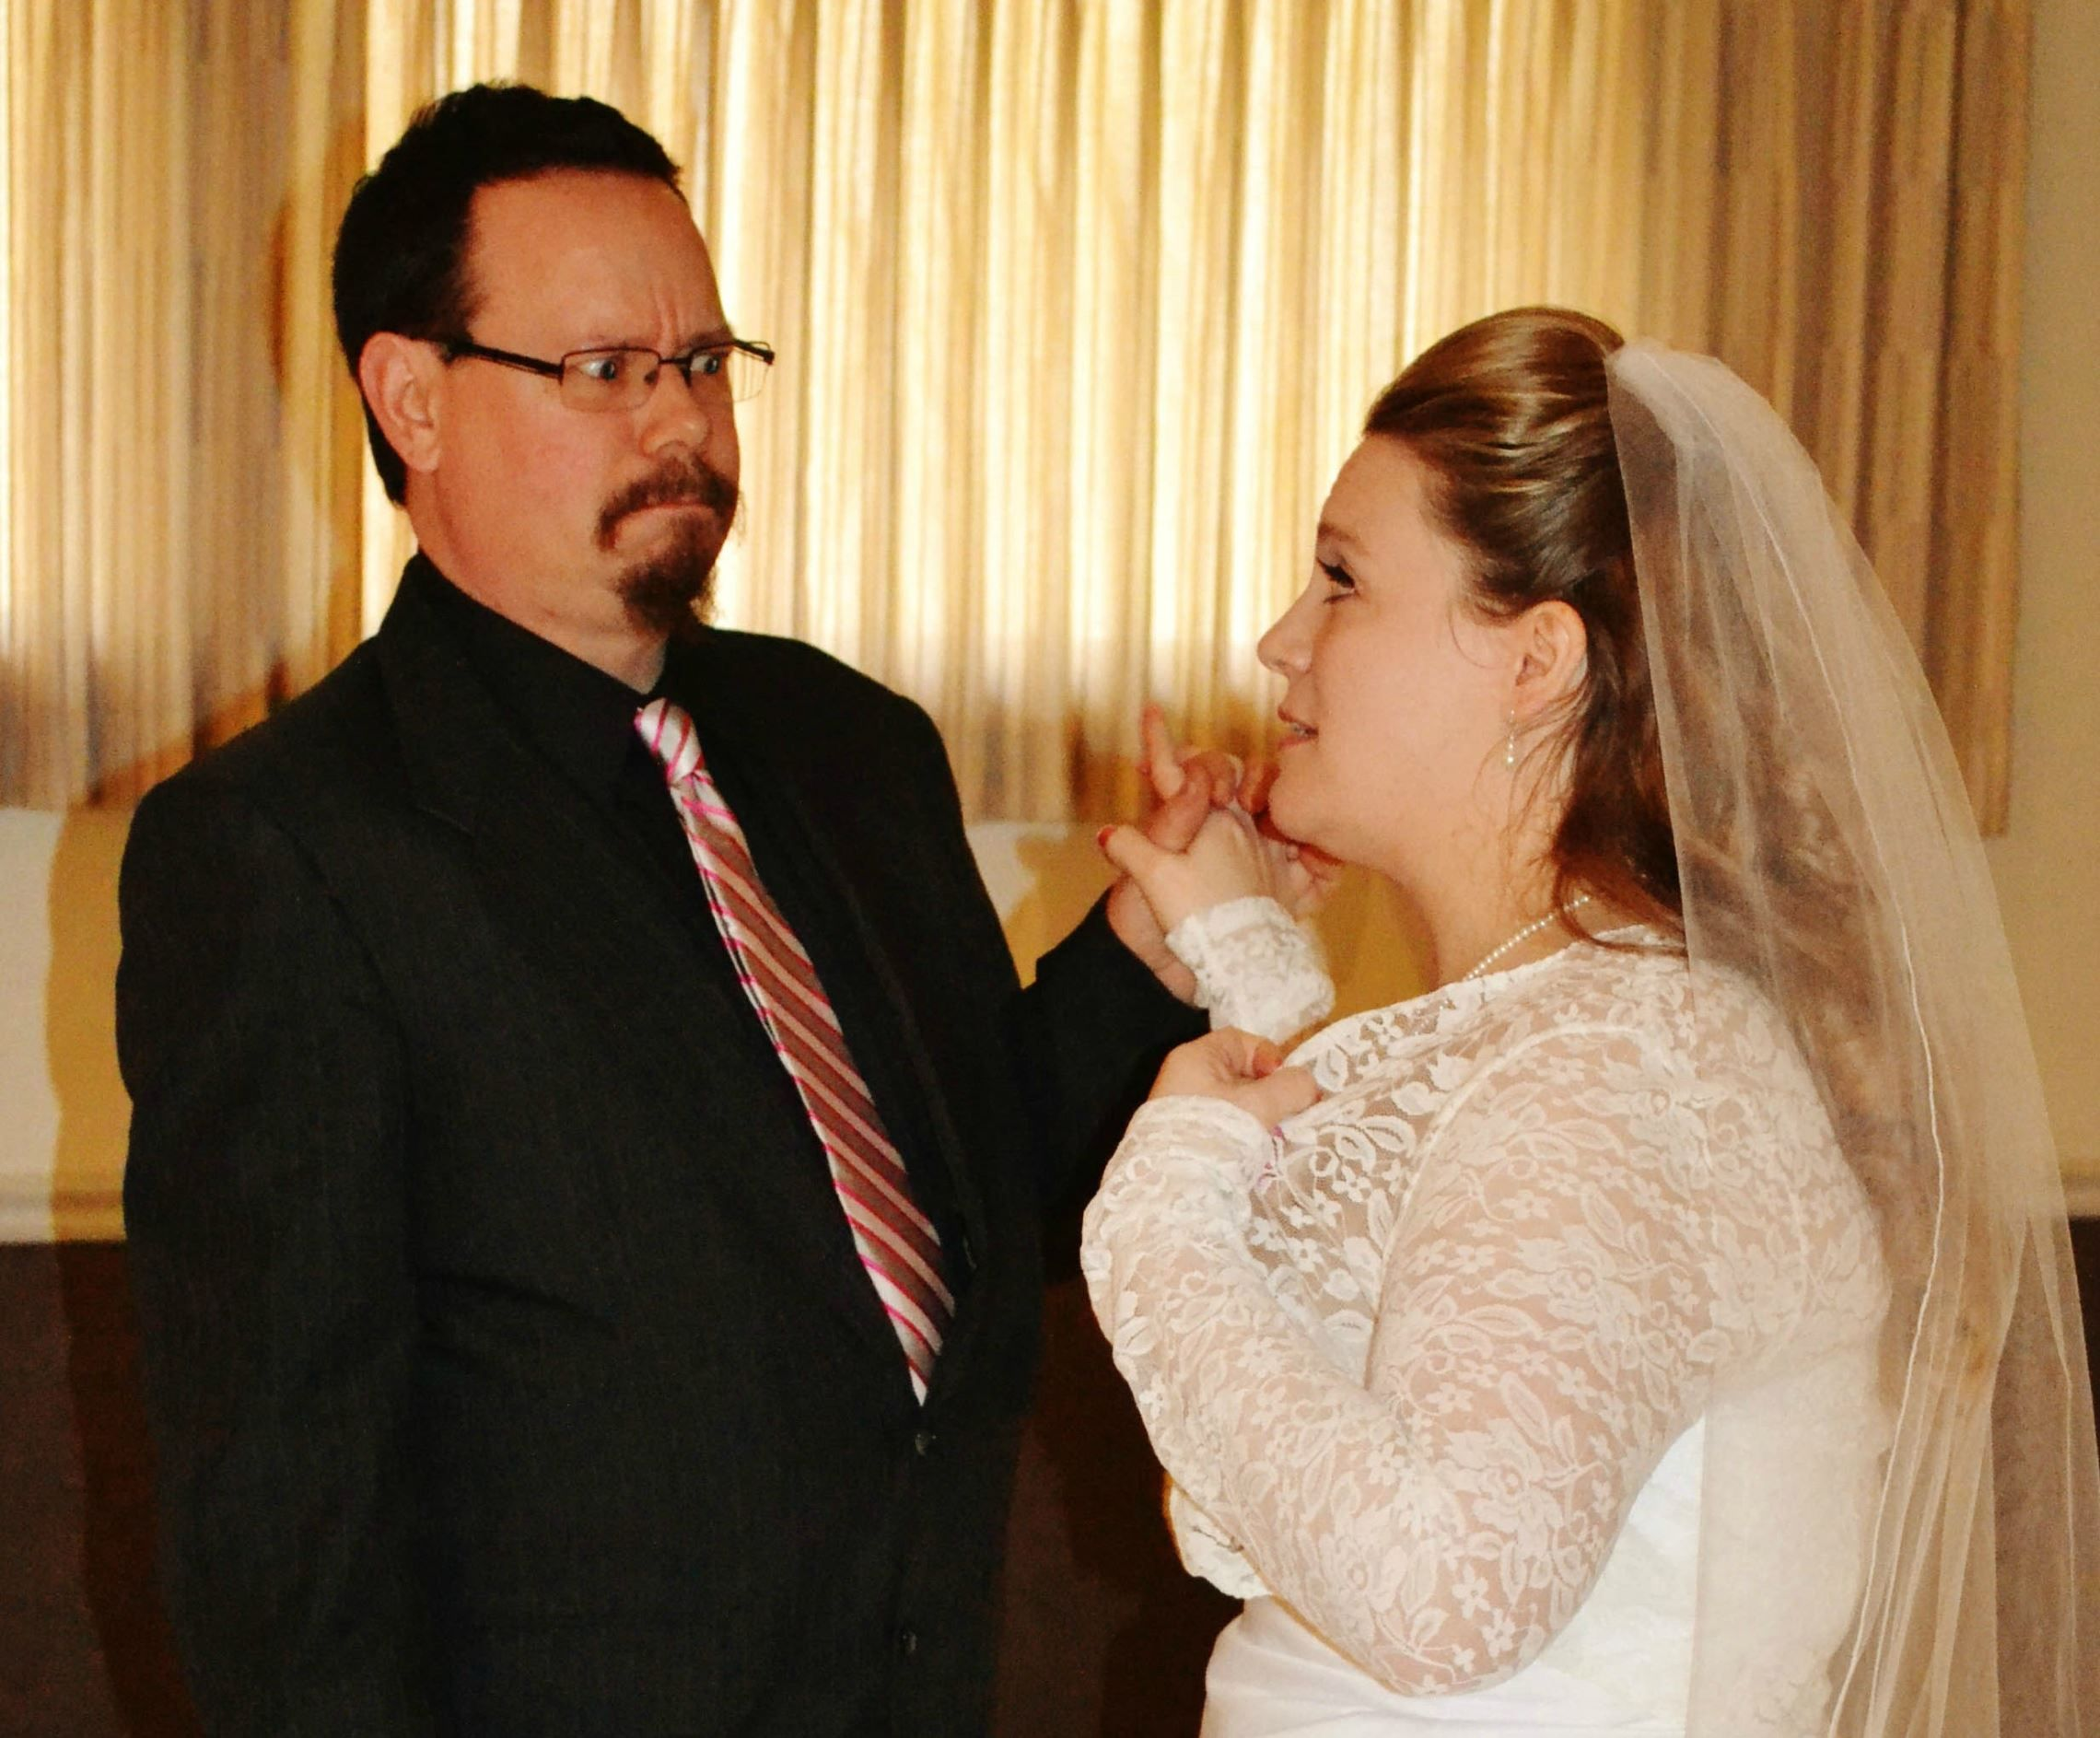 12 Brave Married Couples Share Their Beyond-Hilarious Wedding Fails